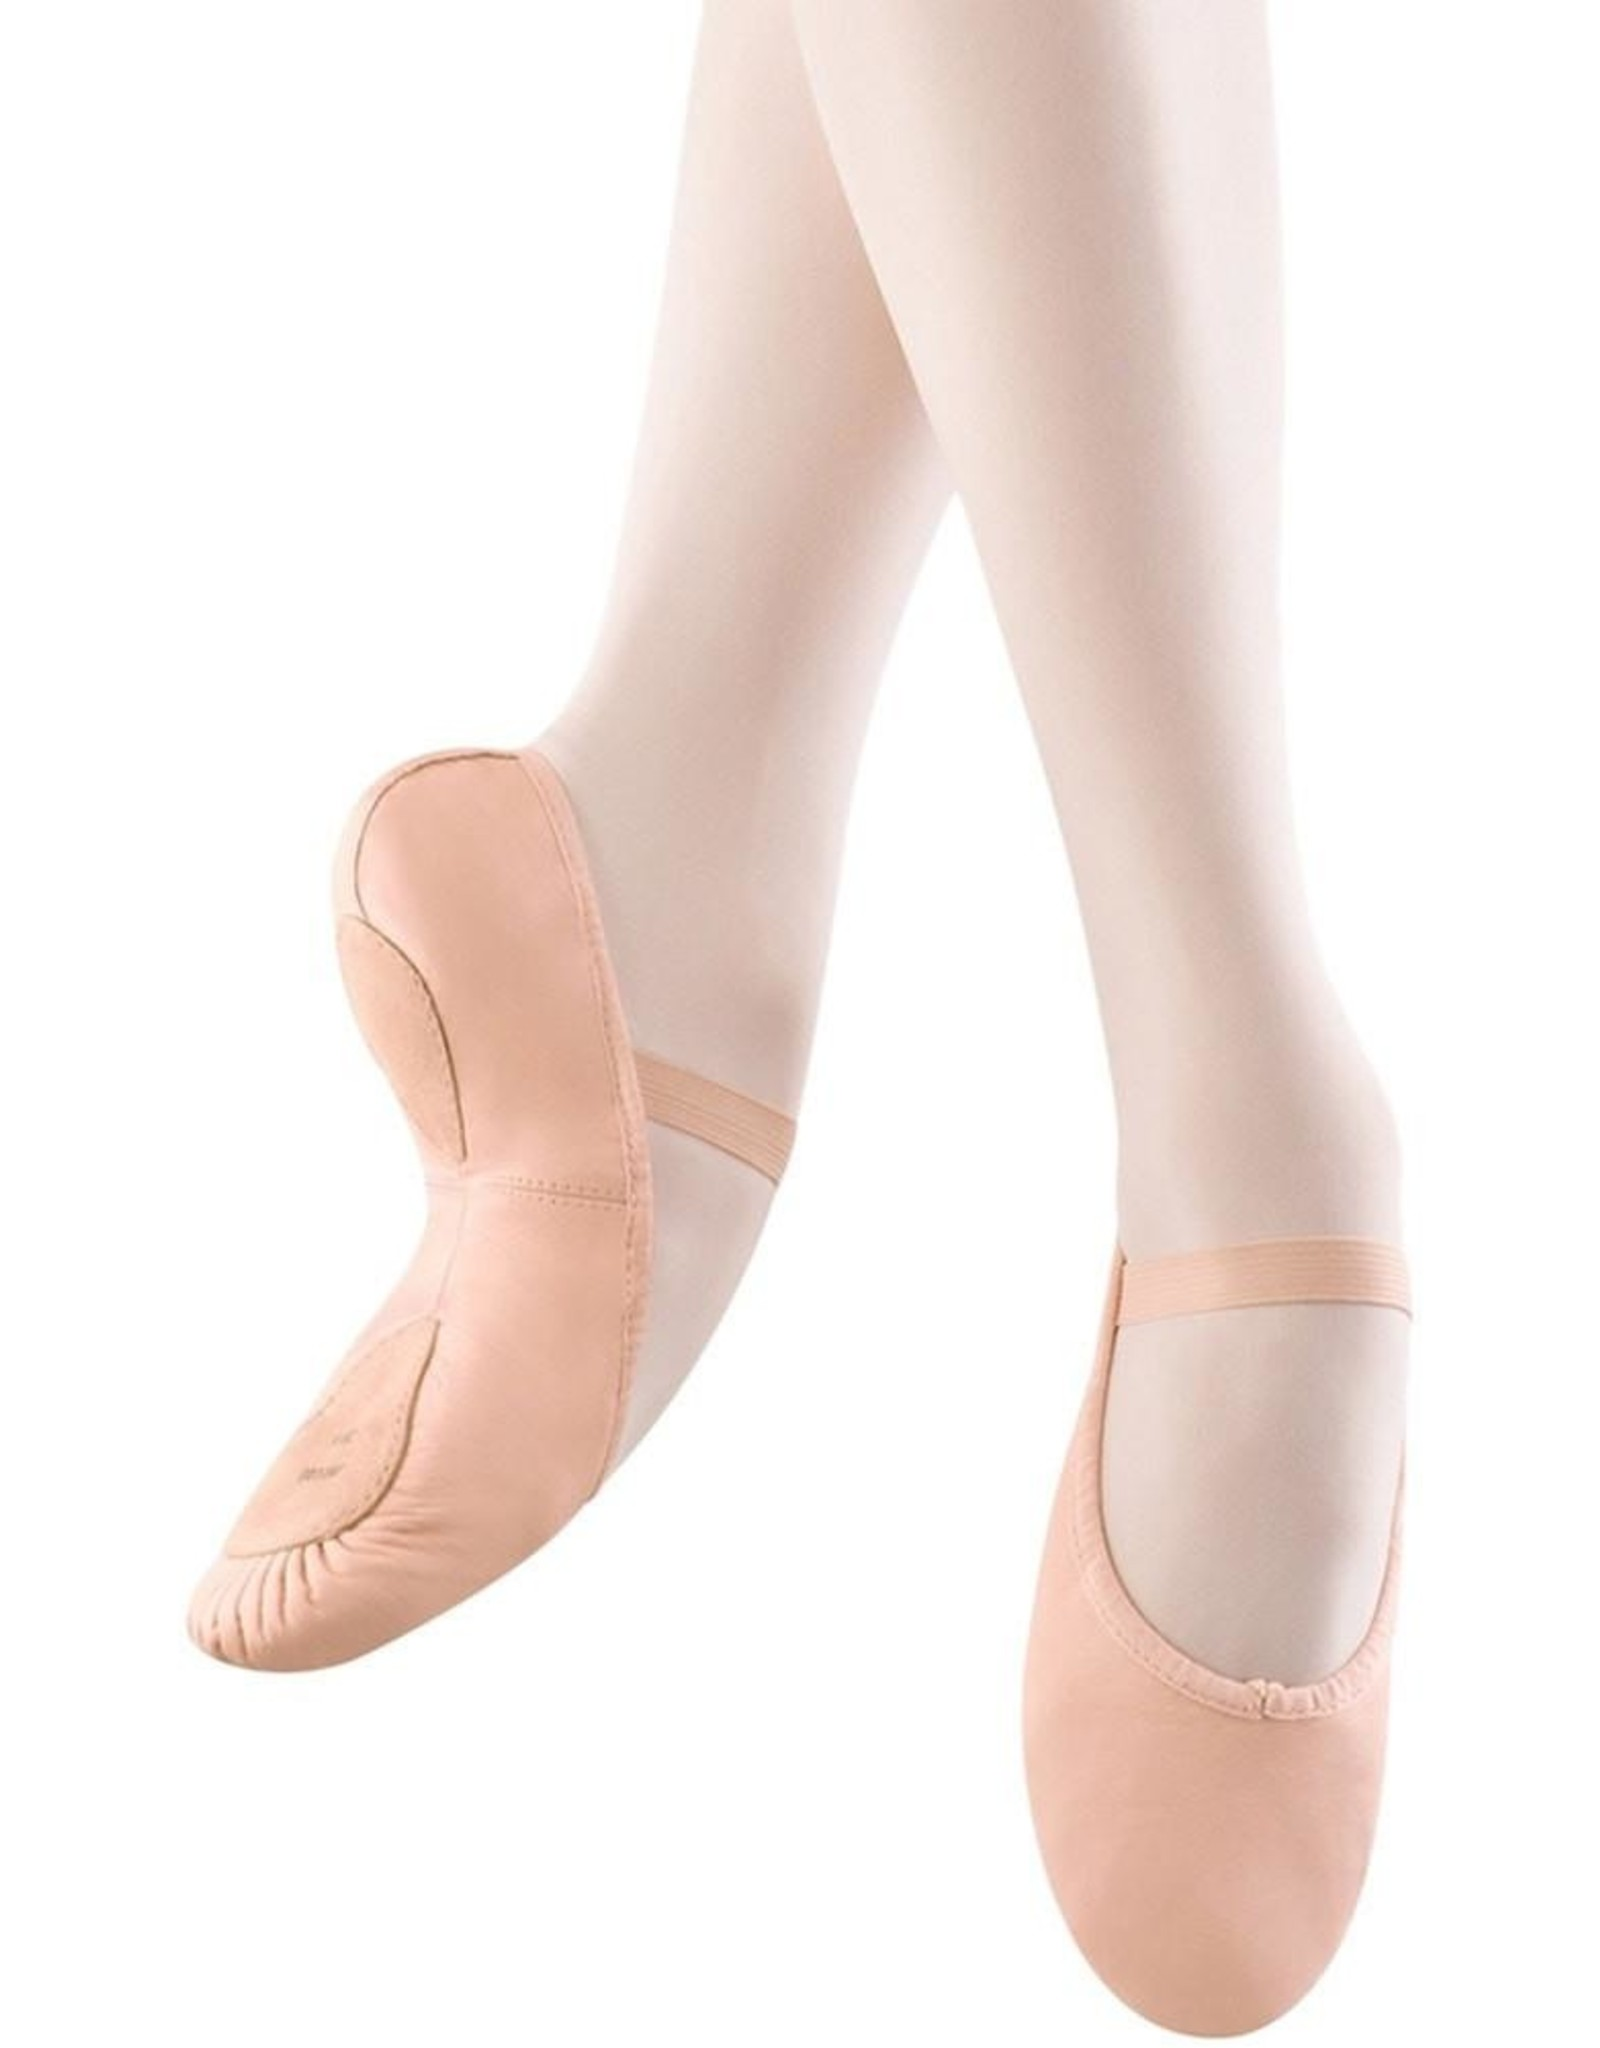 BLOCH DANSOFT ll LEATHER SPLIT SOLE W/STRECH ARCH INSERT GIRLS BALLET SLIPPERS (SO258G)